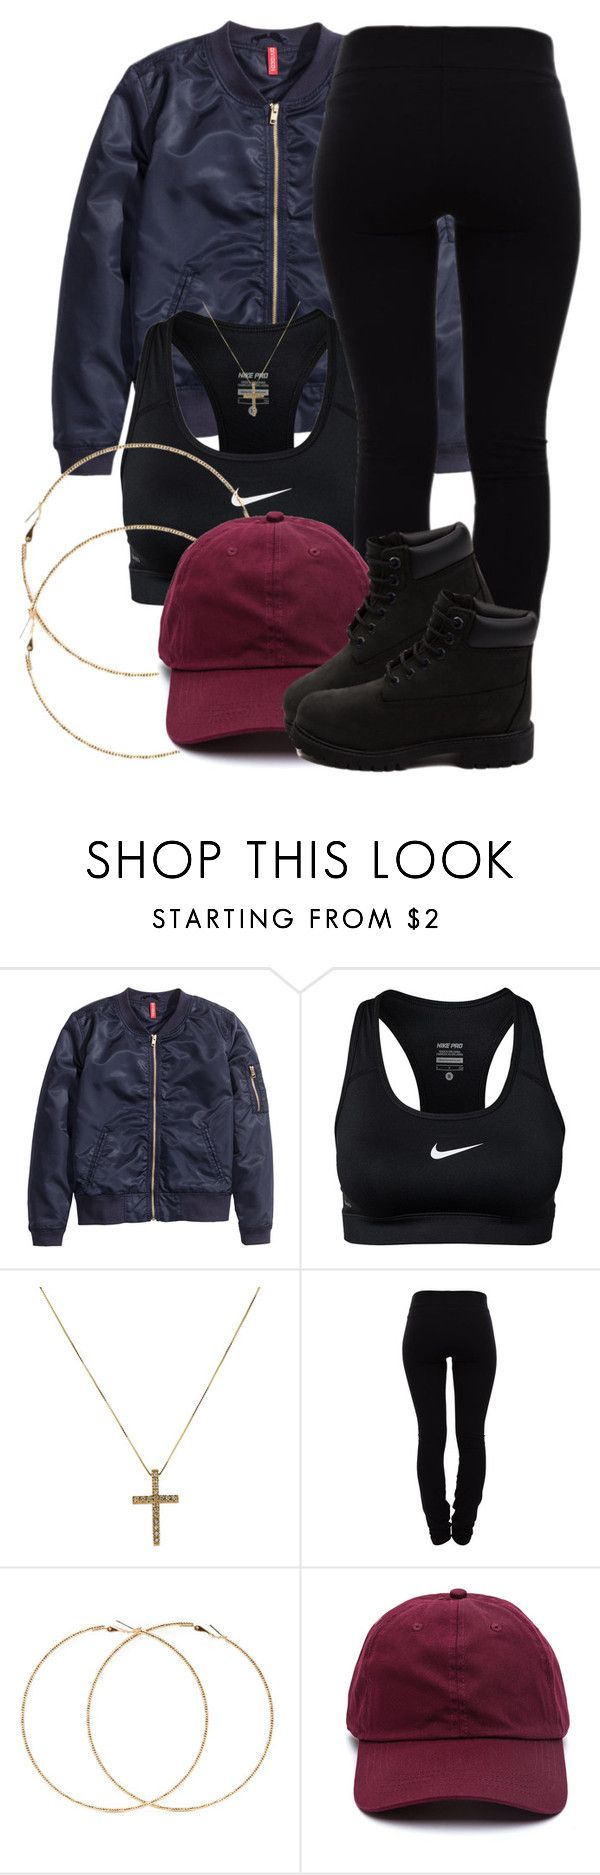 """""""12 20 15"""" by miizz-starburst ❤ liked on Polyvore featuring H&M, NIKE, Helmut Lang, Forever 21 and Timberland"""